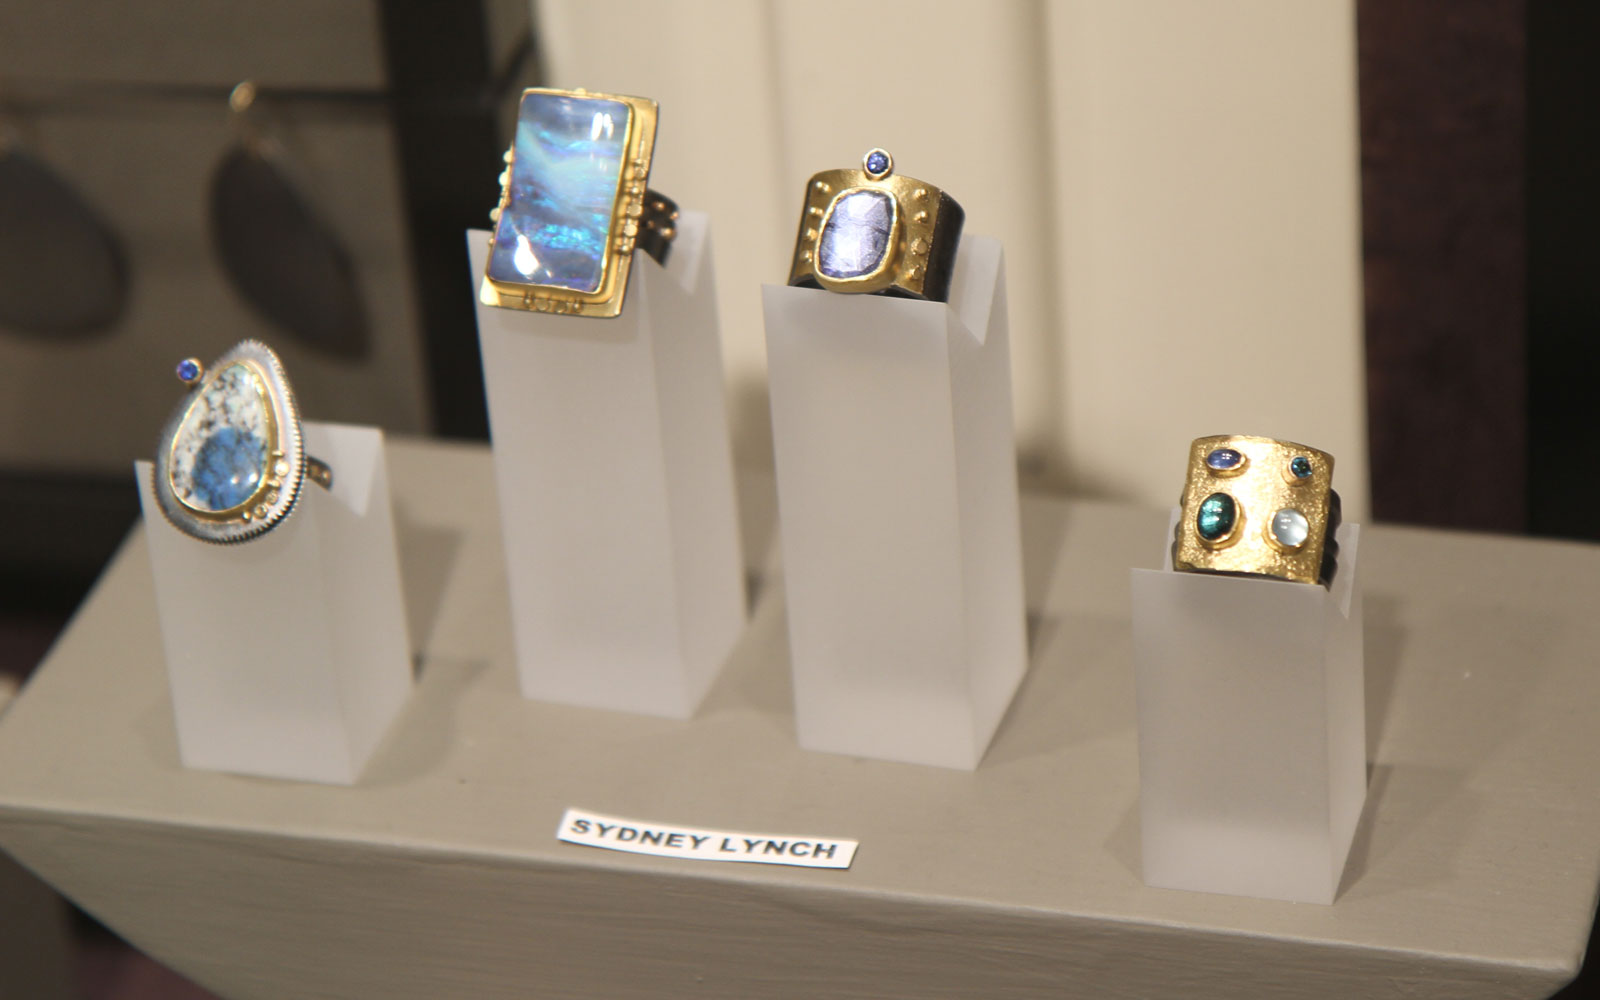 Sydney Lynch's artistically arranged rings, using silver, gold, opals and other assorted semi-precious gems.